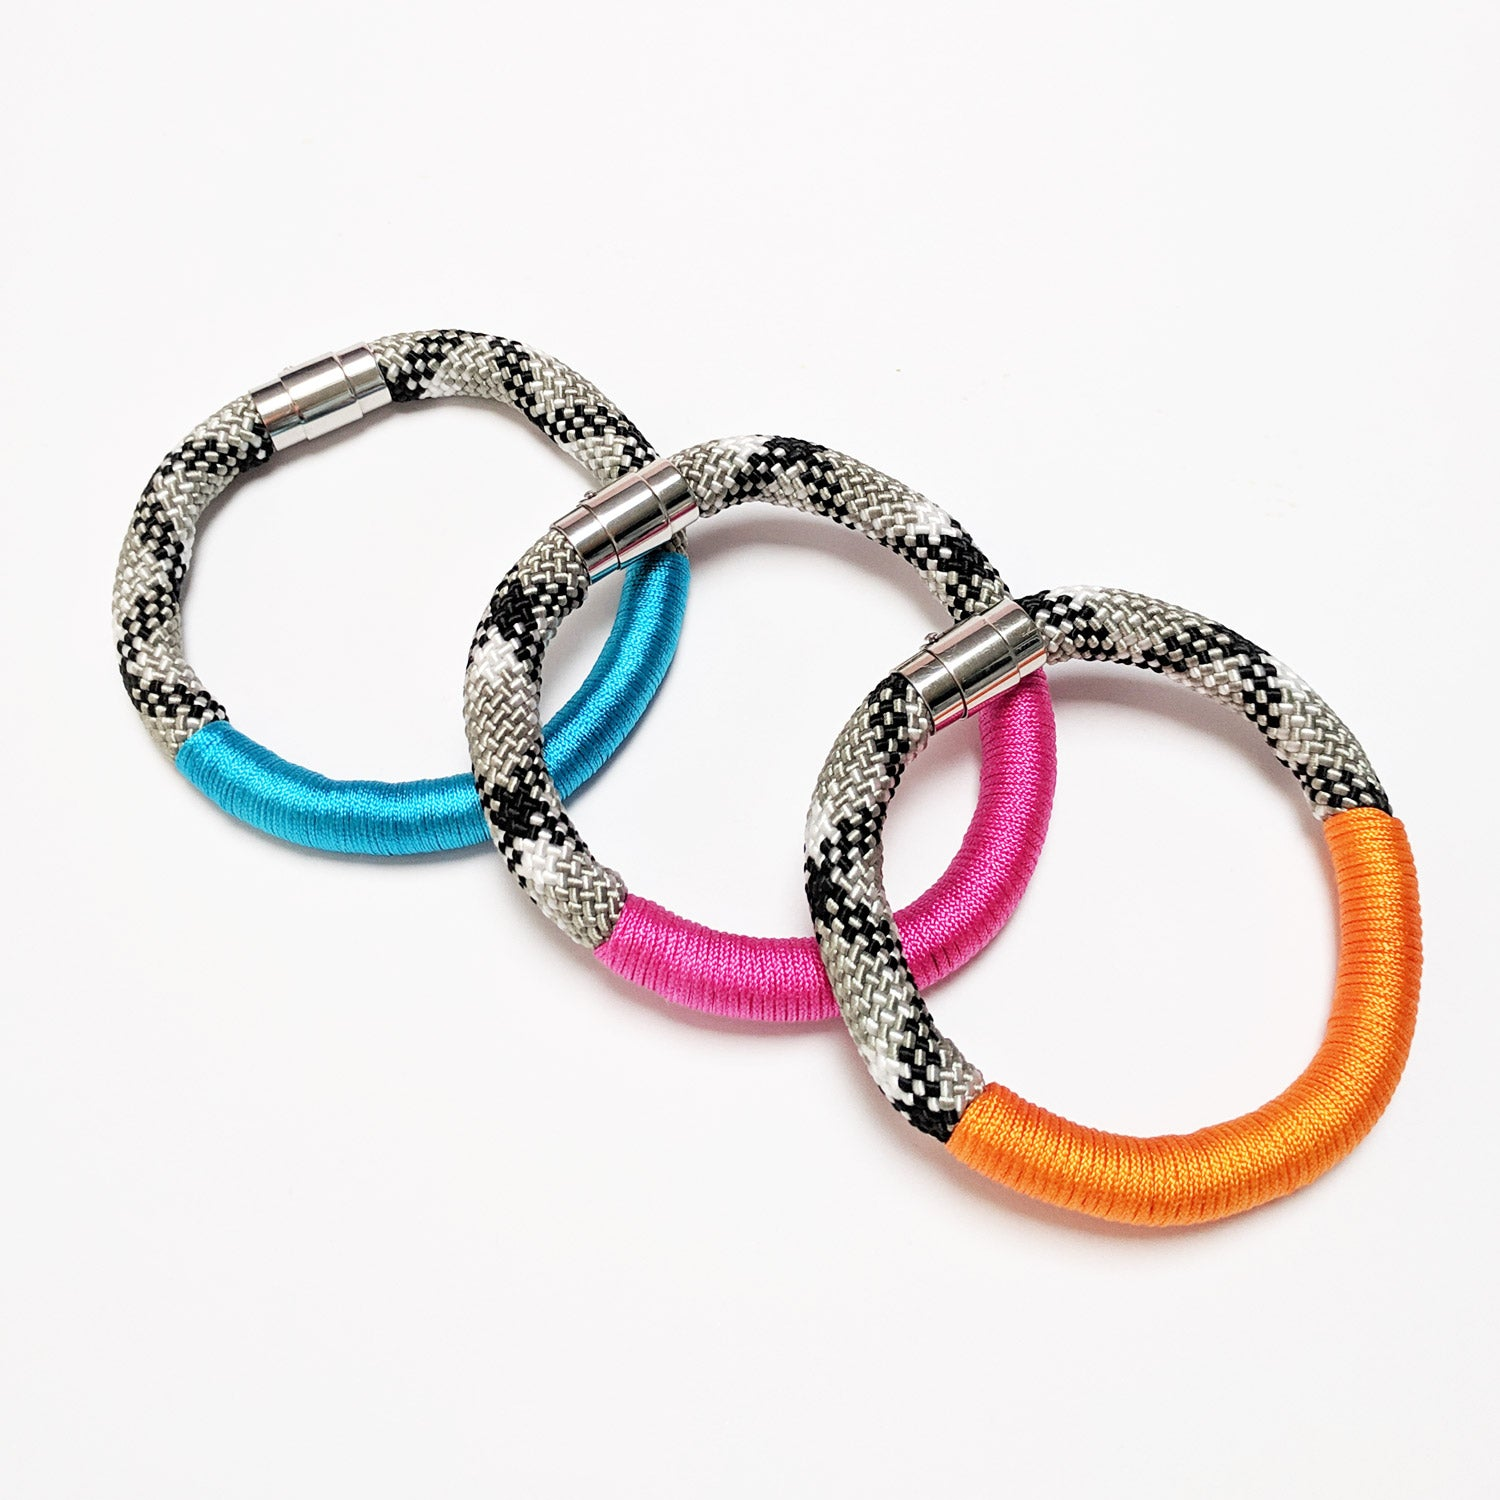 Colour block bracelets